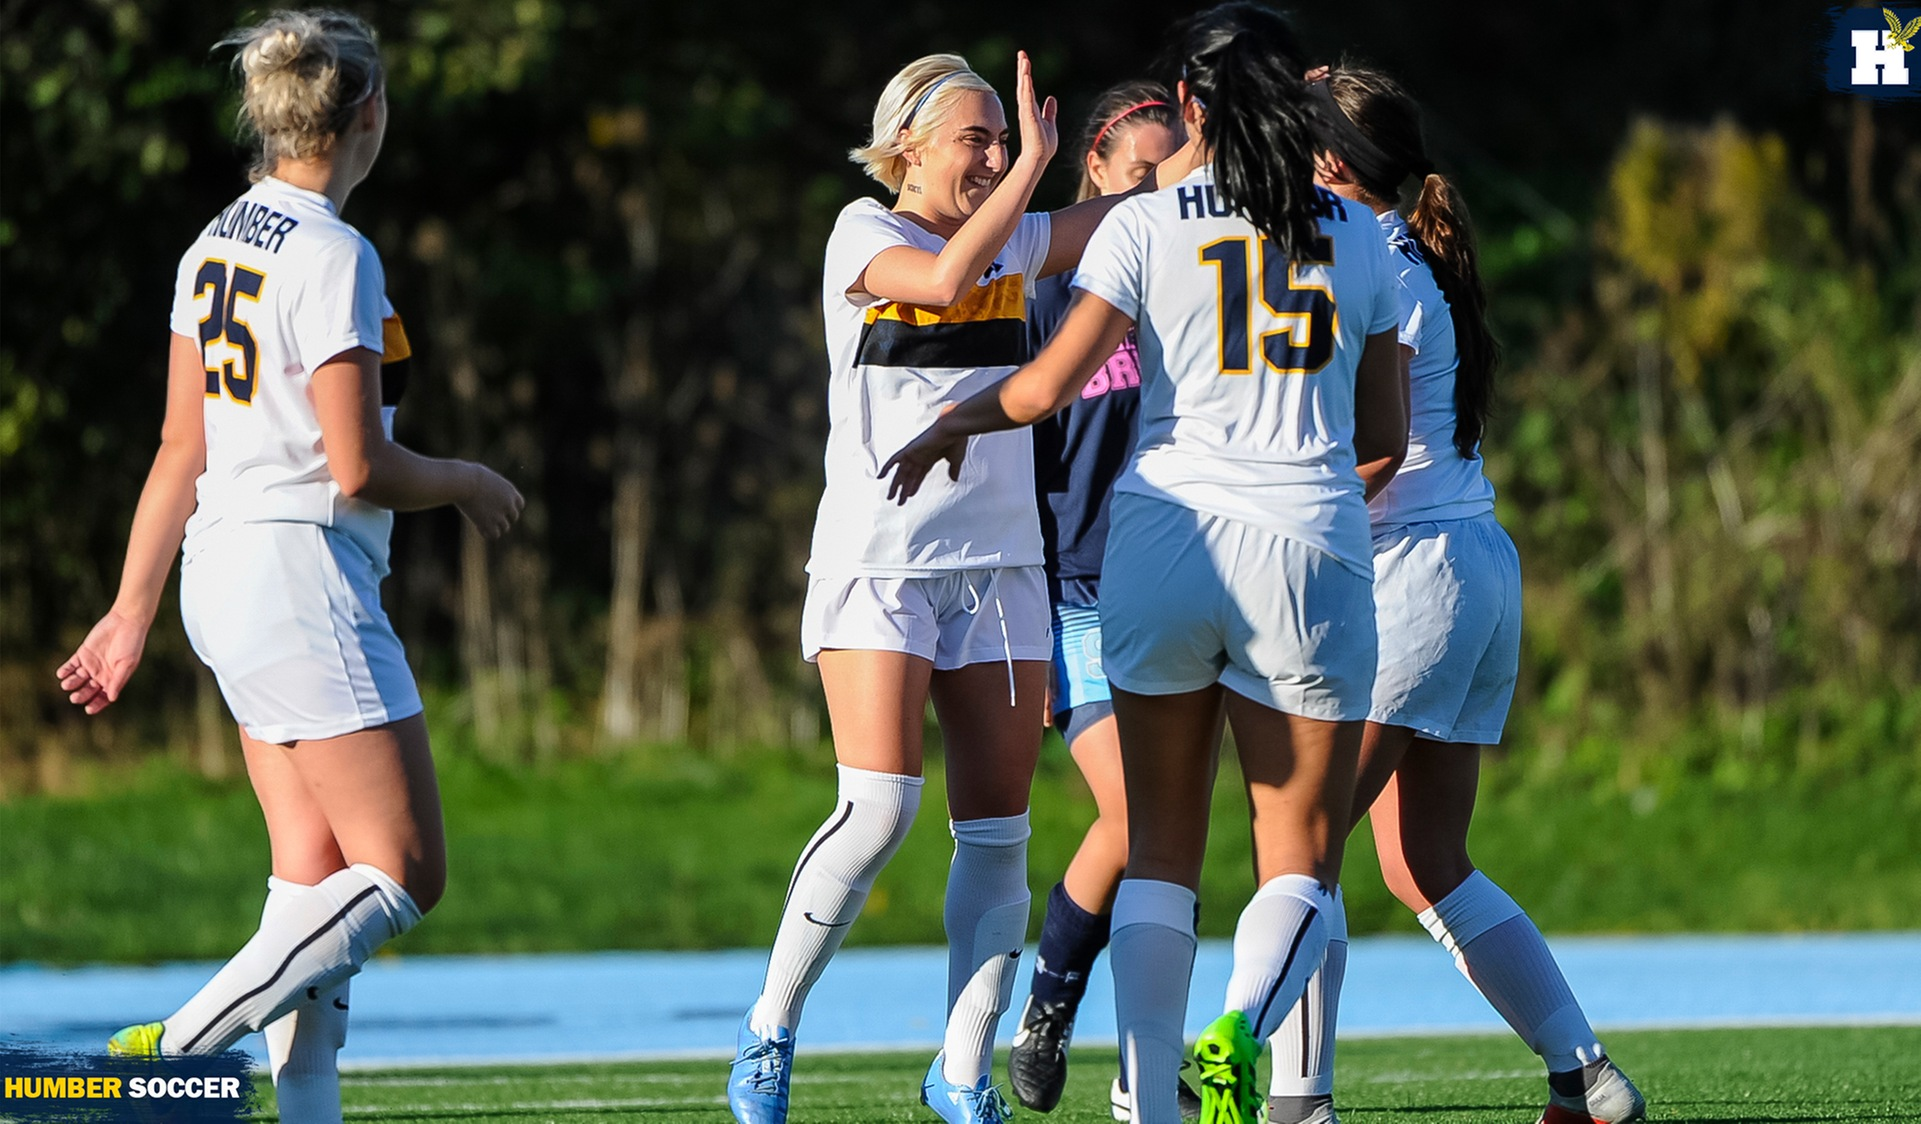 No. 4 WOMEN'S SOCCER CONCLUDE HISTORIC SEASON WITH WIN AT No. 11 SHERIDAN